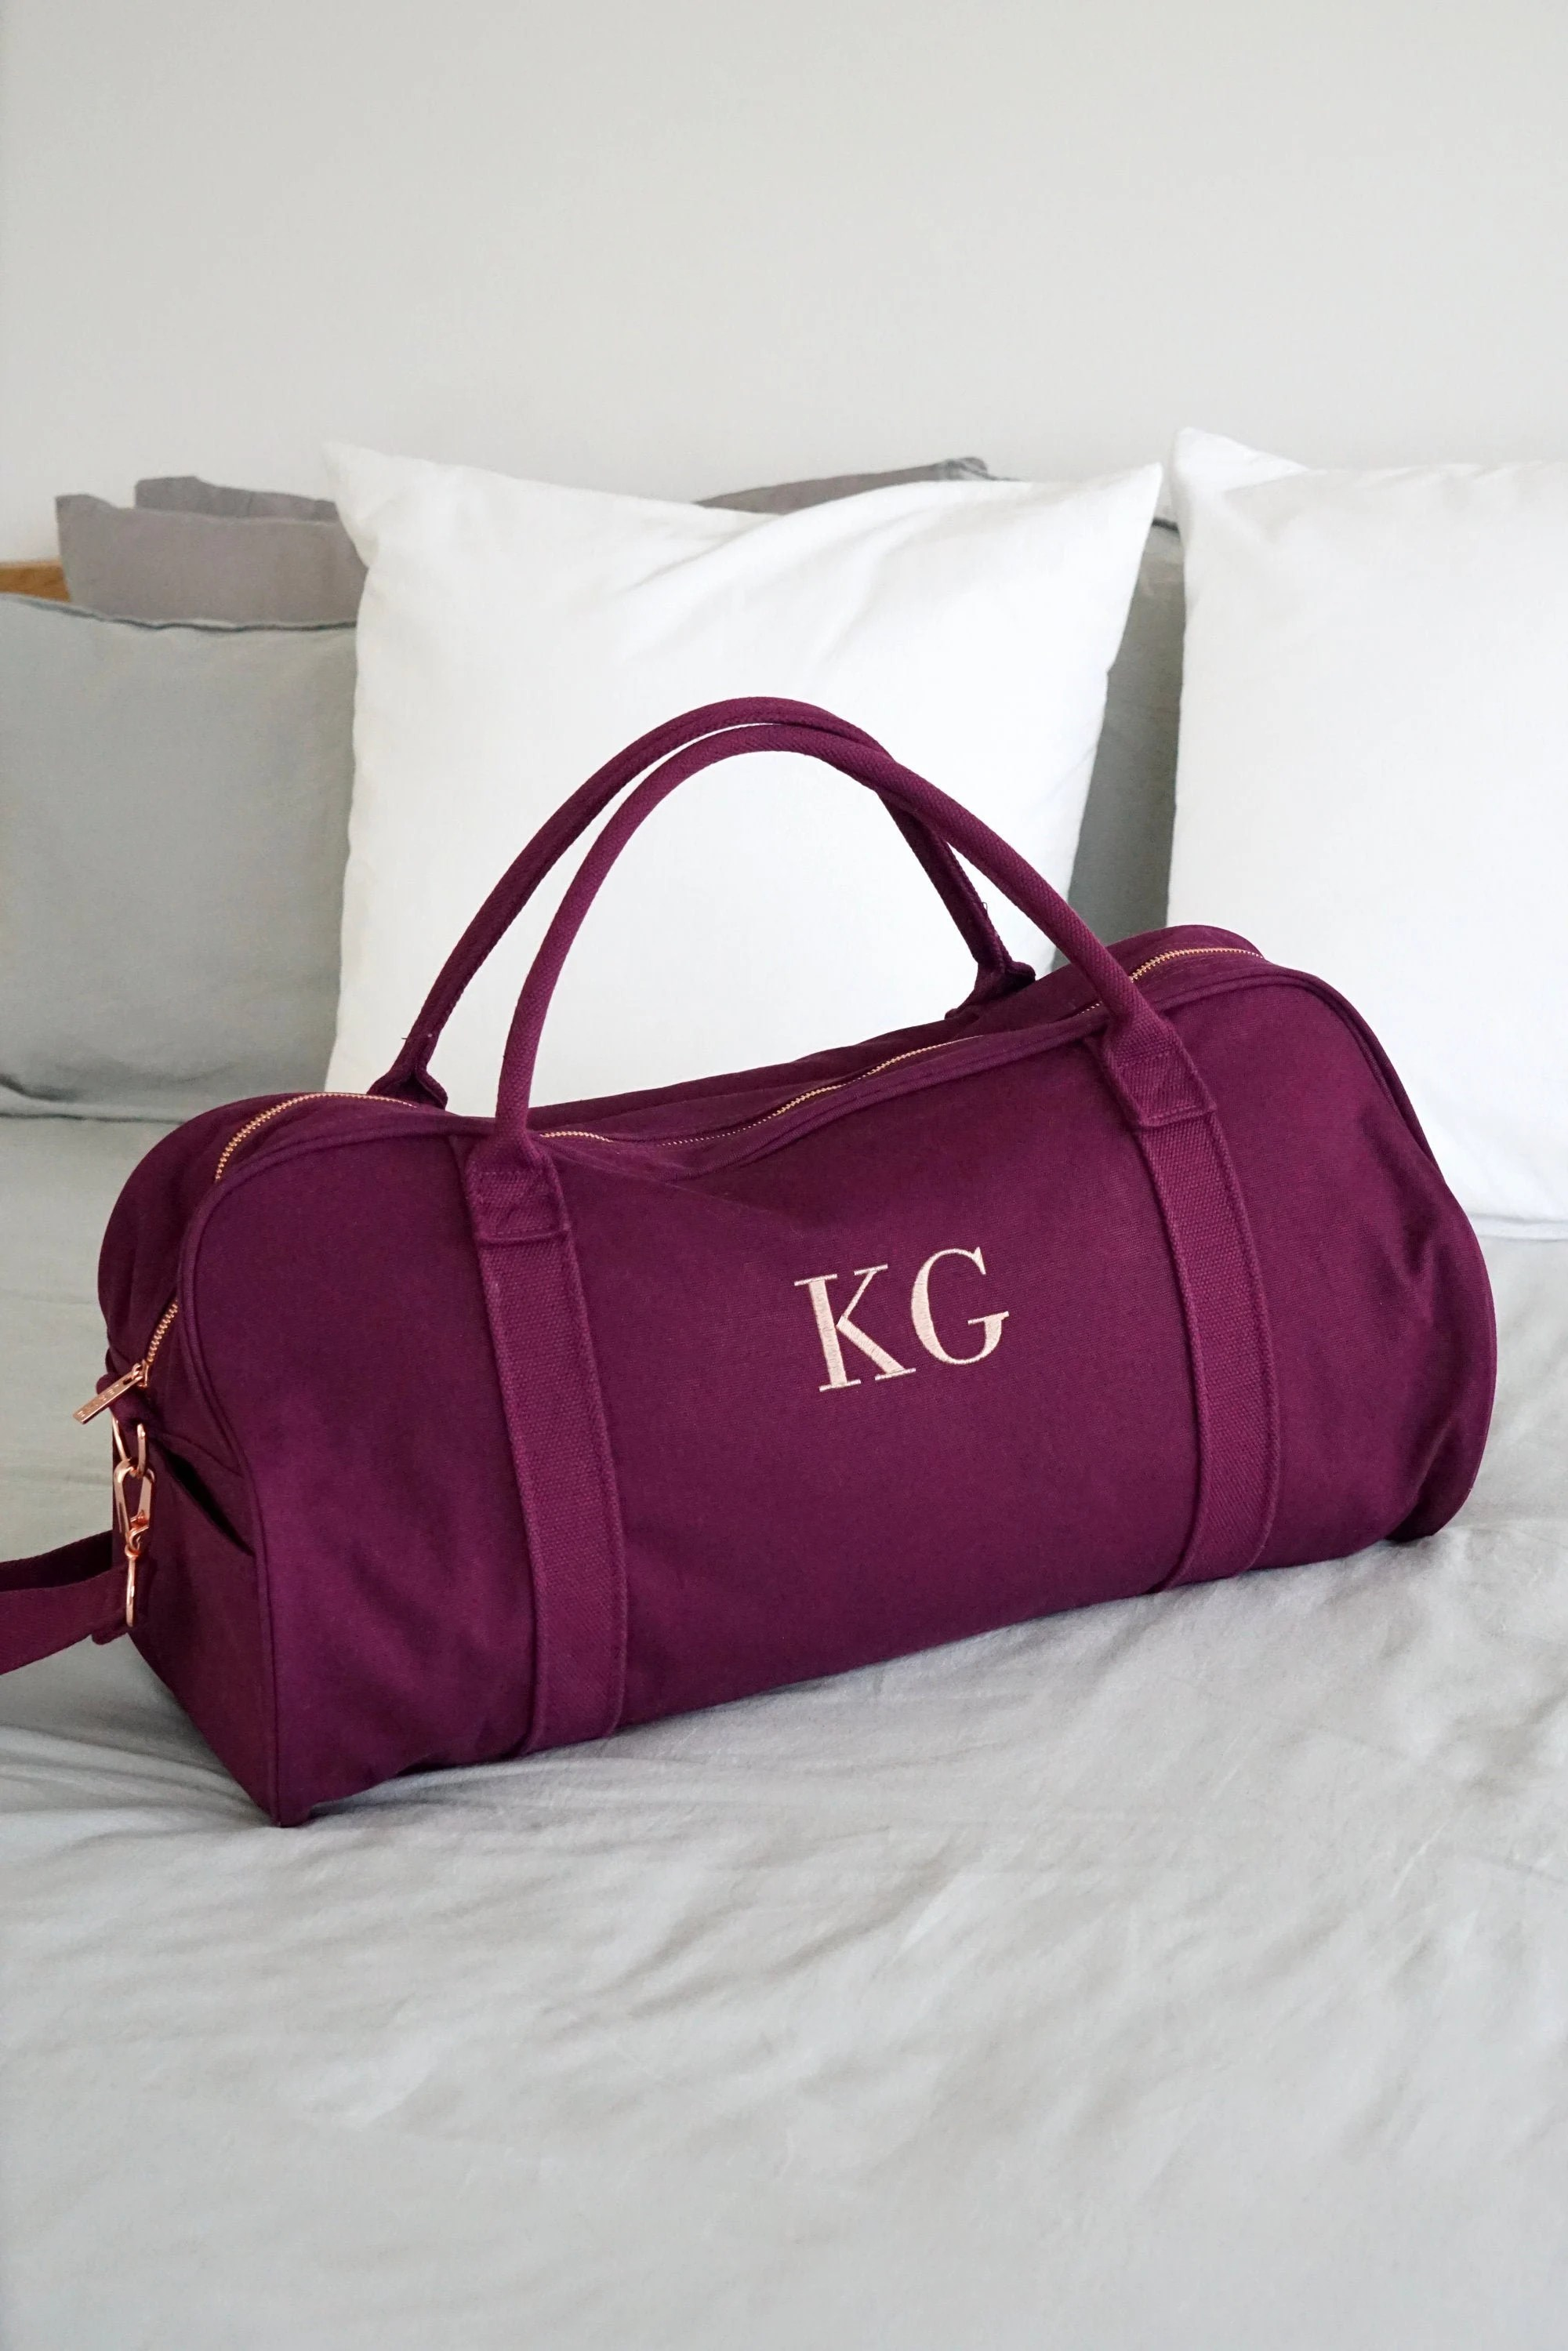 Personalised Bag //Duffle Bag //Bridesmaid Gifts //Monogrammed Mulberry